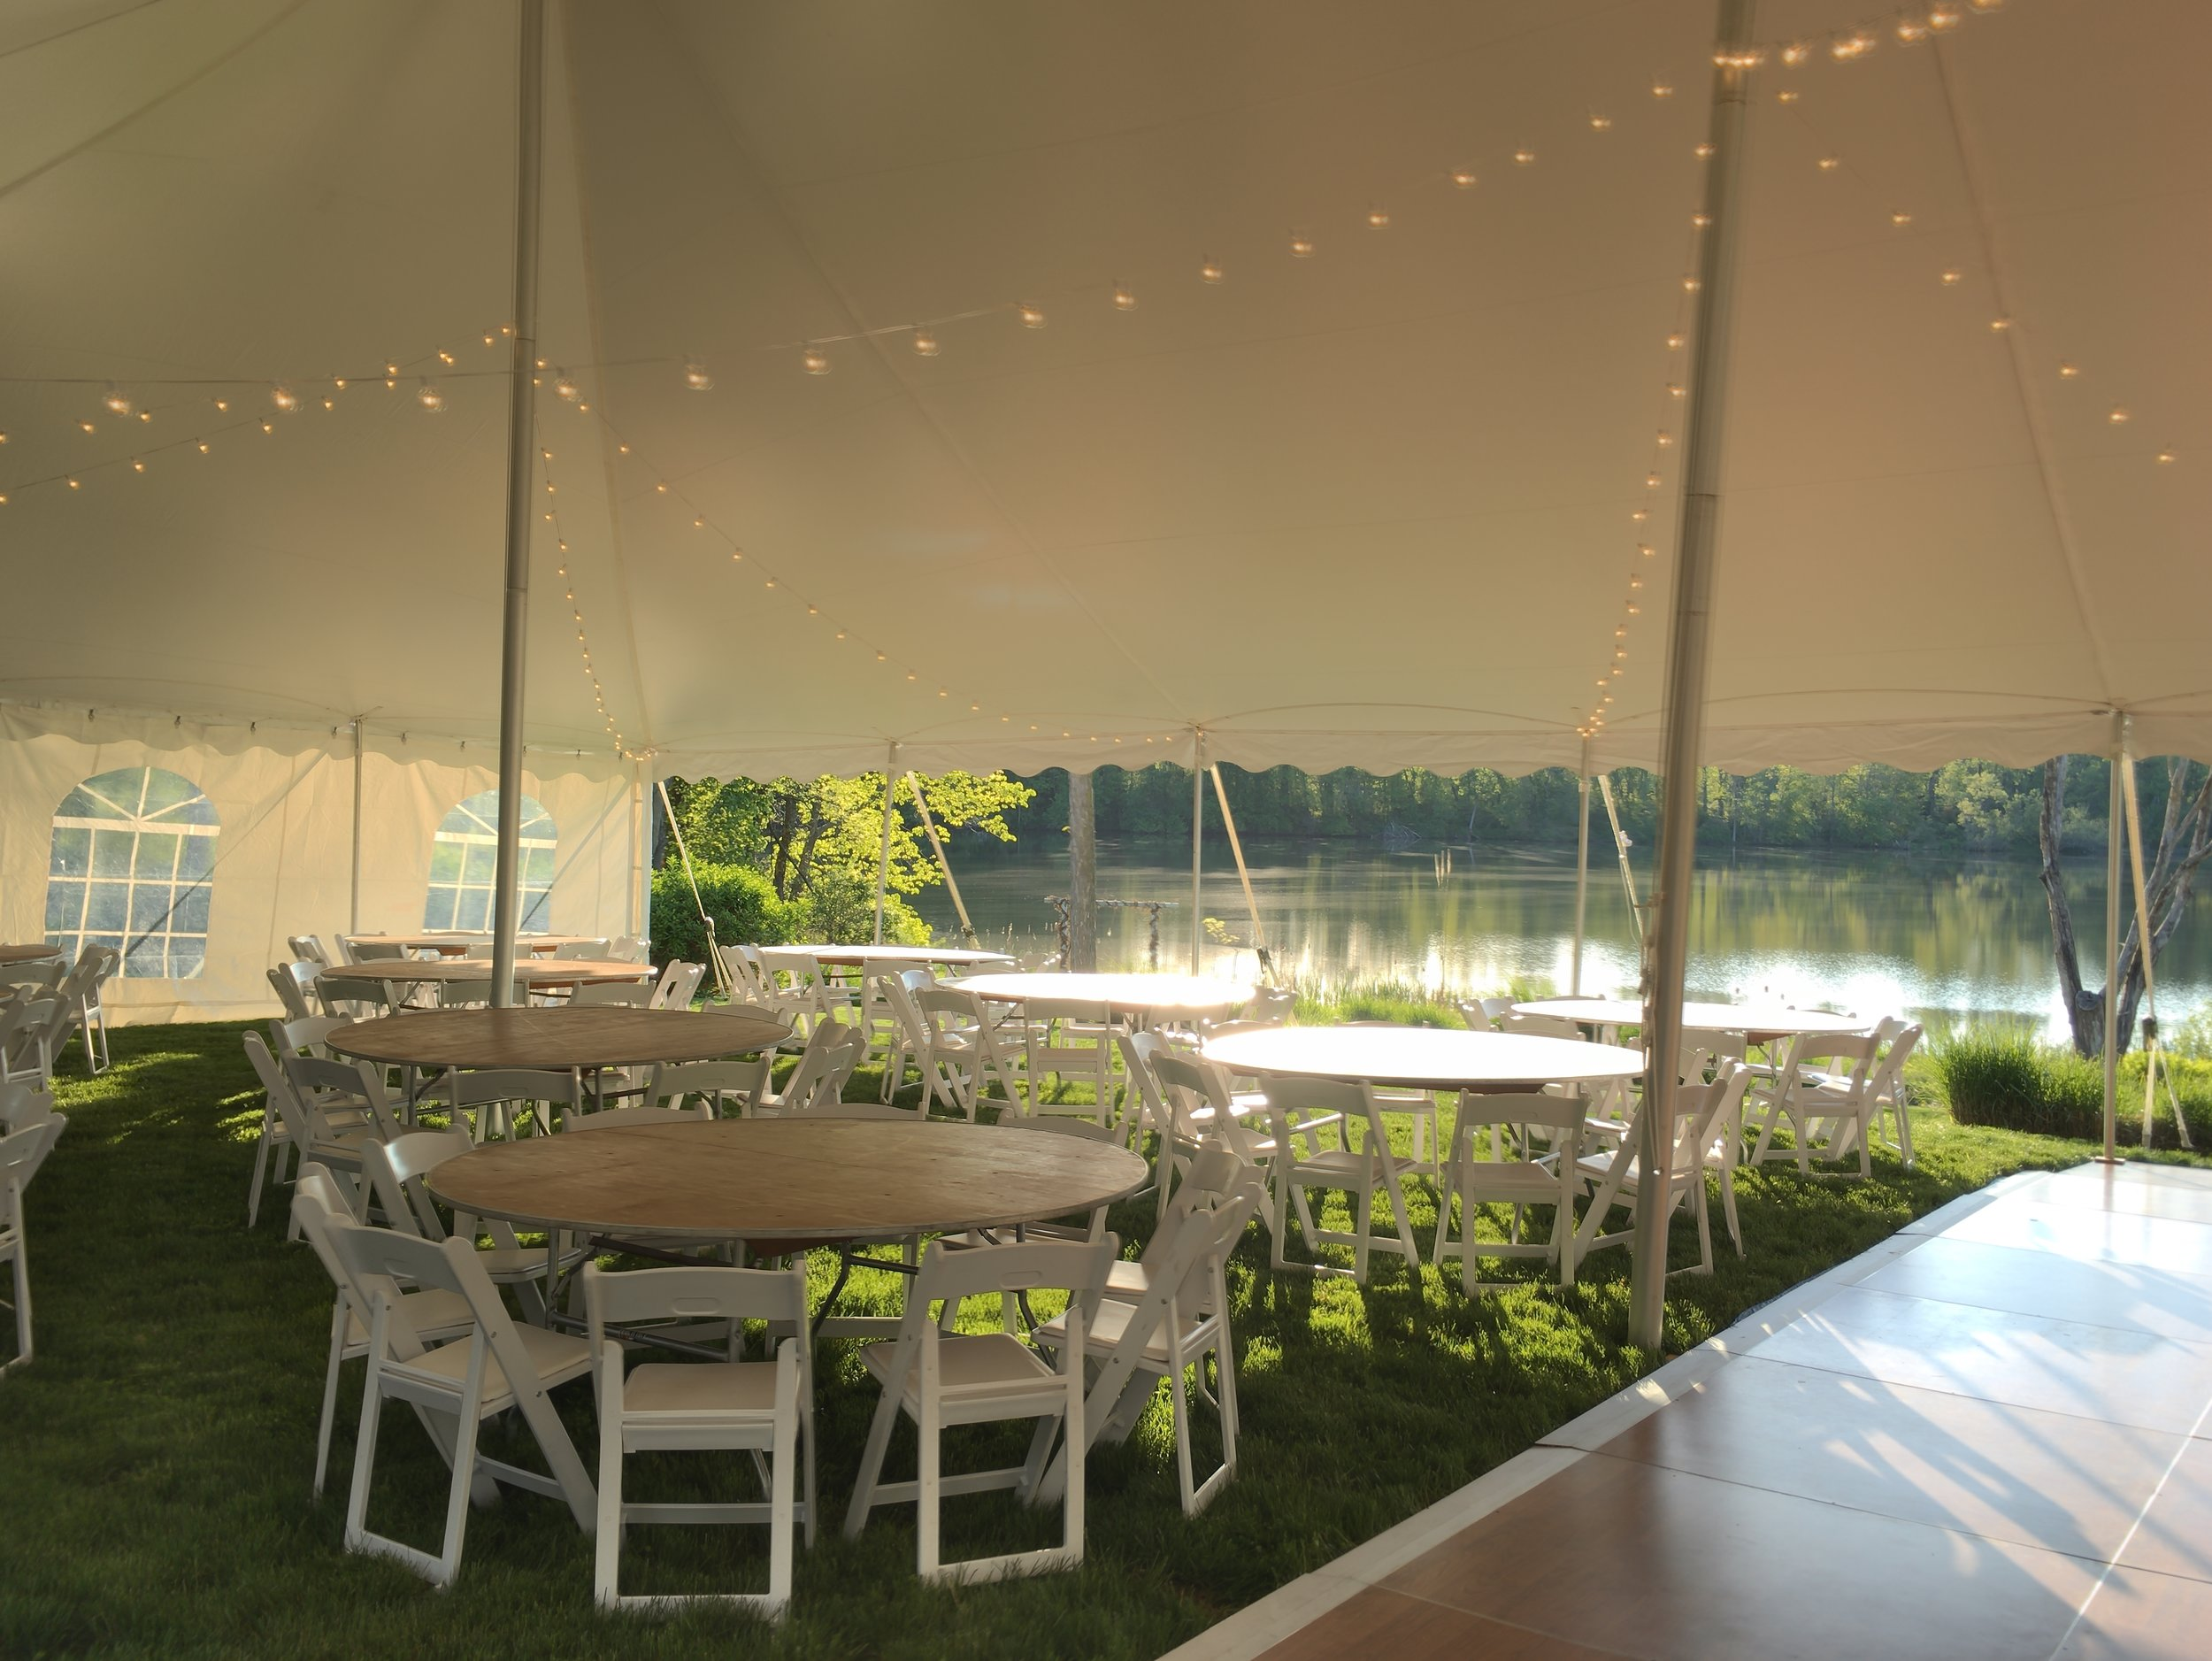 cafe lighting, dance floors, white padded chairs and round tables for your tent wedding